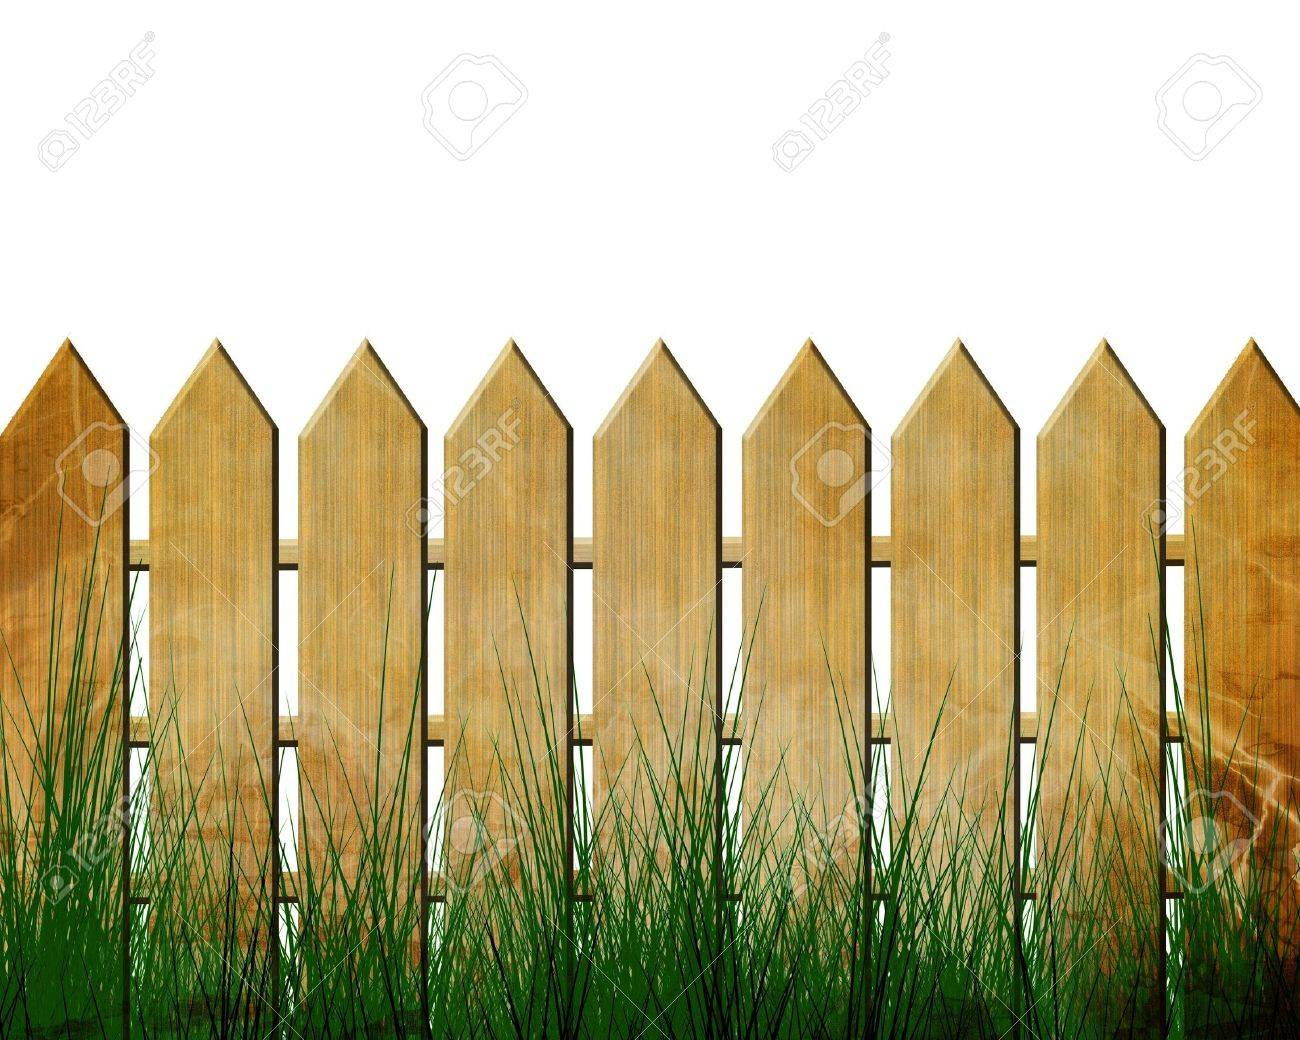 Fence isolated on a white background Stock Photo - 2843279